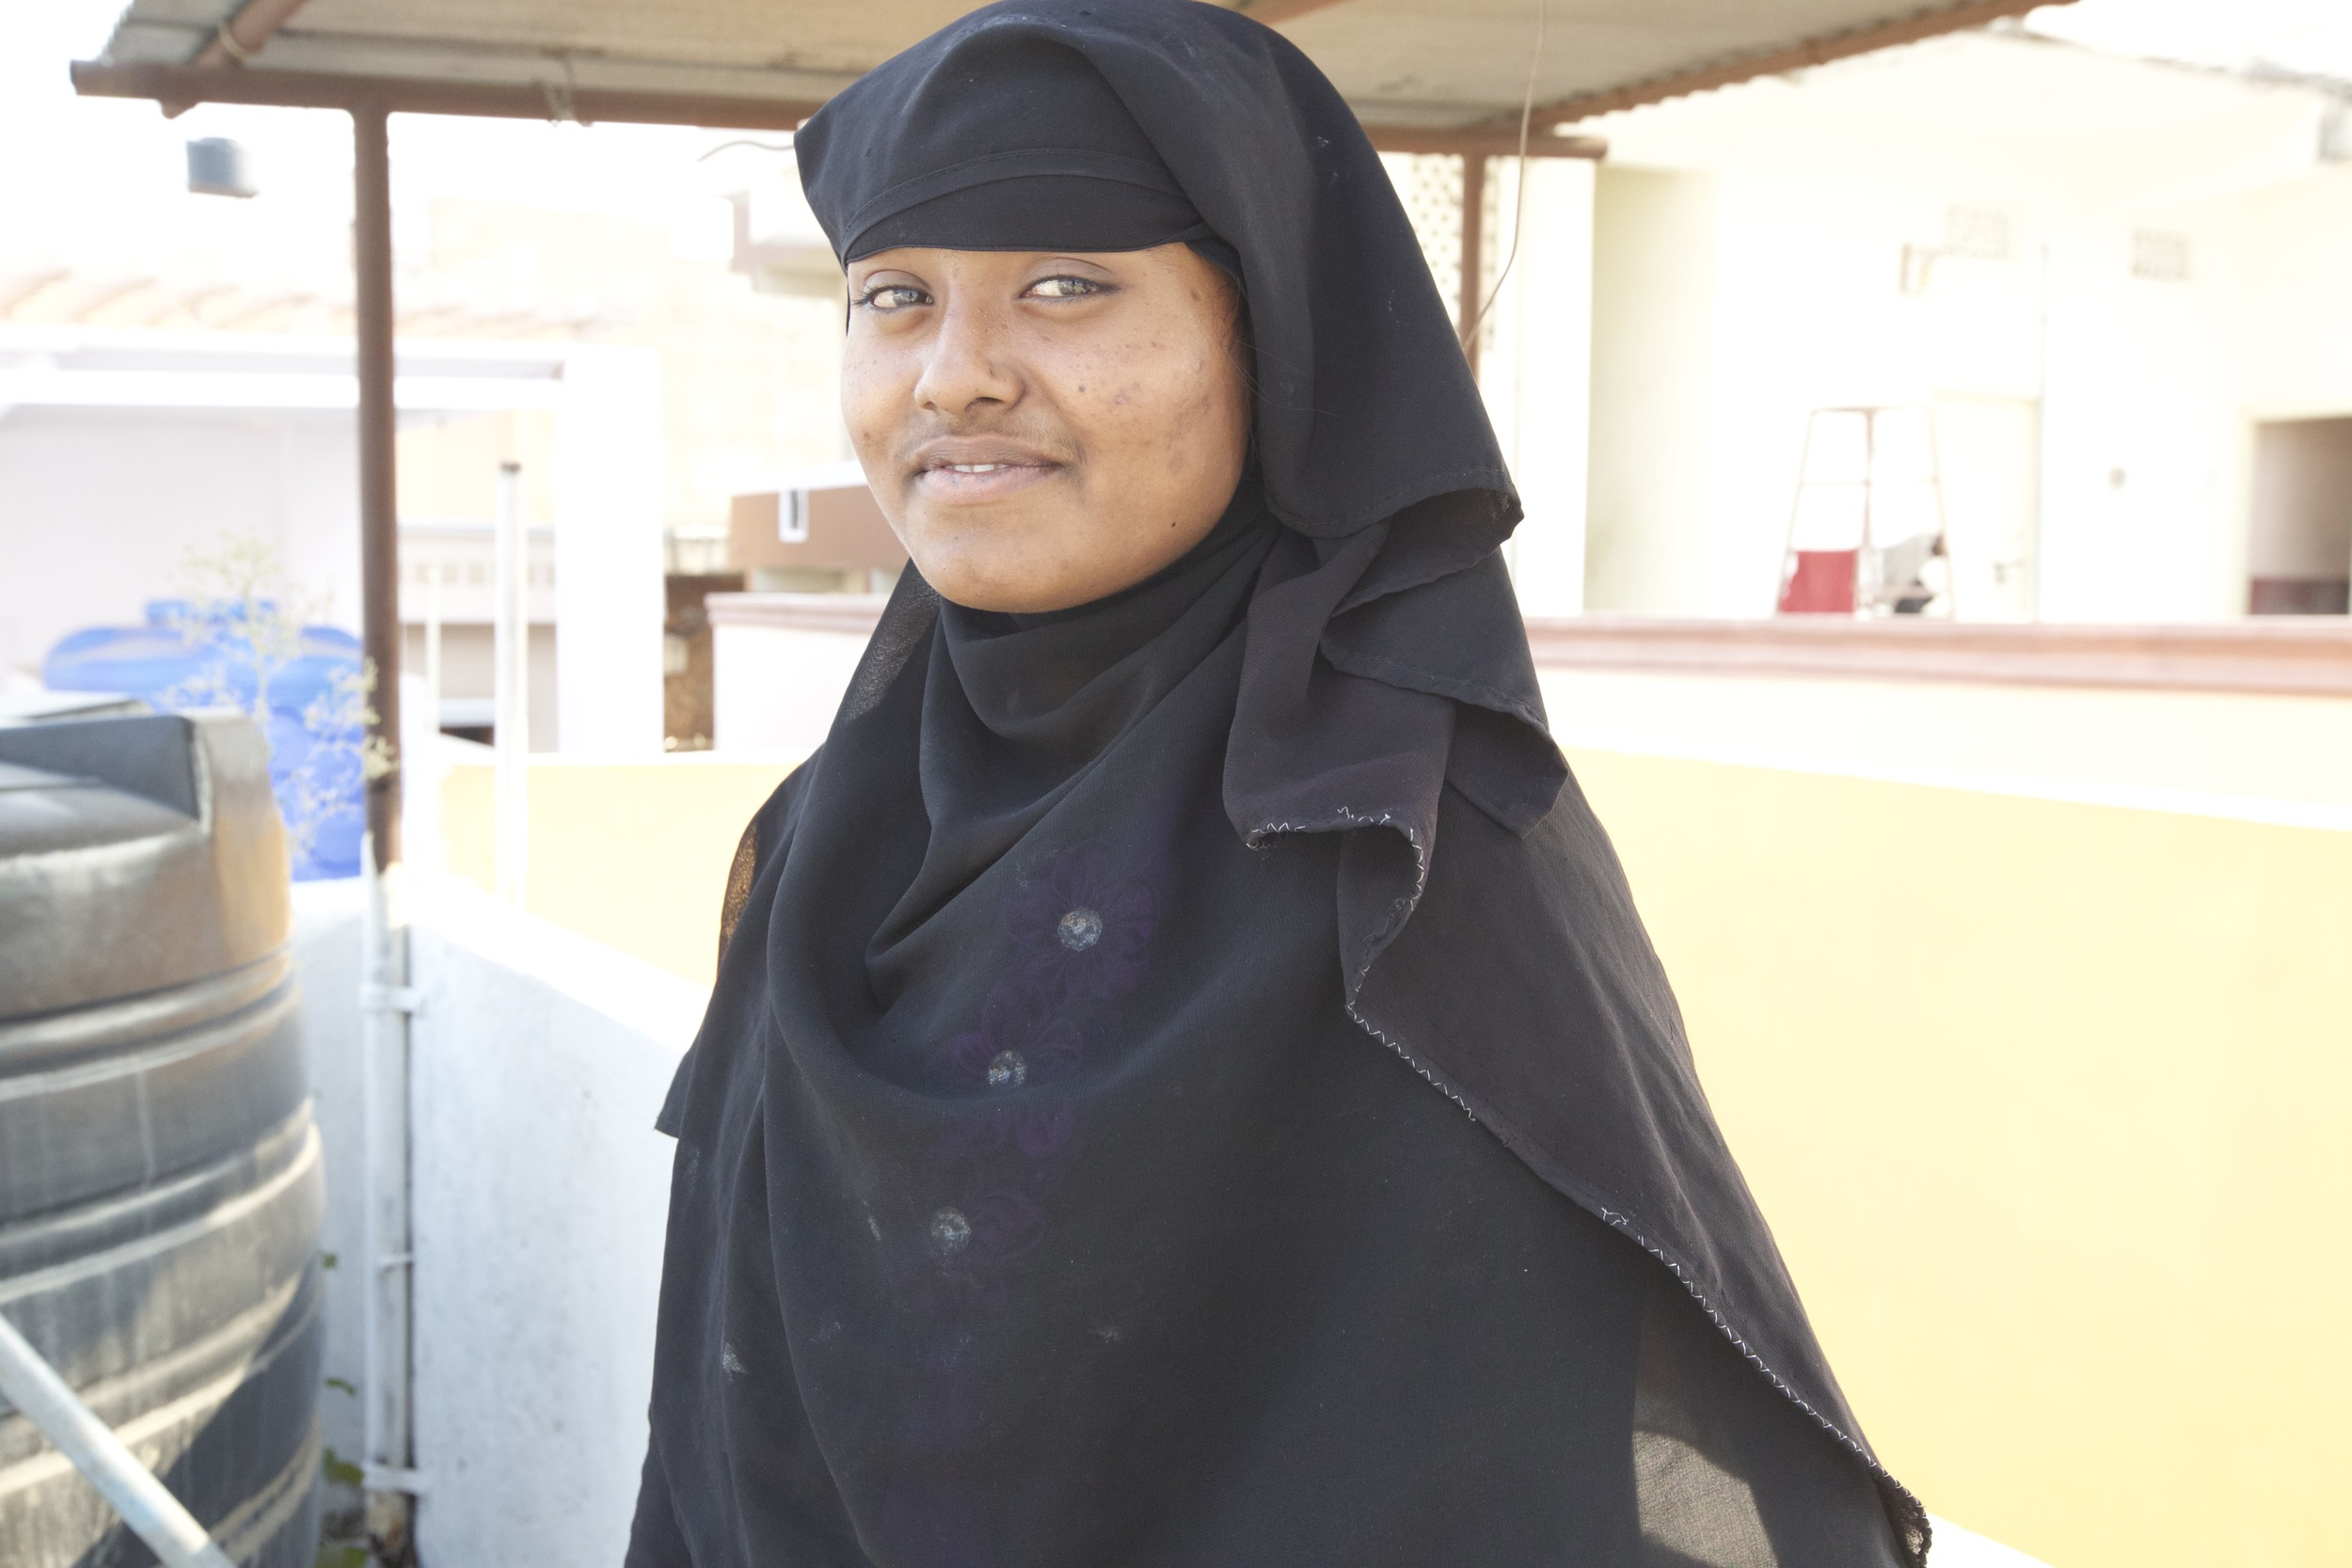 As soon as Tayyaba moved from Hyderabad to Aslam's village in Maharashtra her in laws began abusing her. They were possessive of Aslam, and treated her like a laborer. She was forced to work long hours in outdoor labour, coming home only late at night. Because she was working outside the house (even thought it was at their demand), she was accused by her in laws of having an affair with another man. Aslam was agitated by all the hate directed towards Tayyaba, and would beat her often out of anger.   Click here to read more...